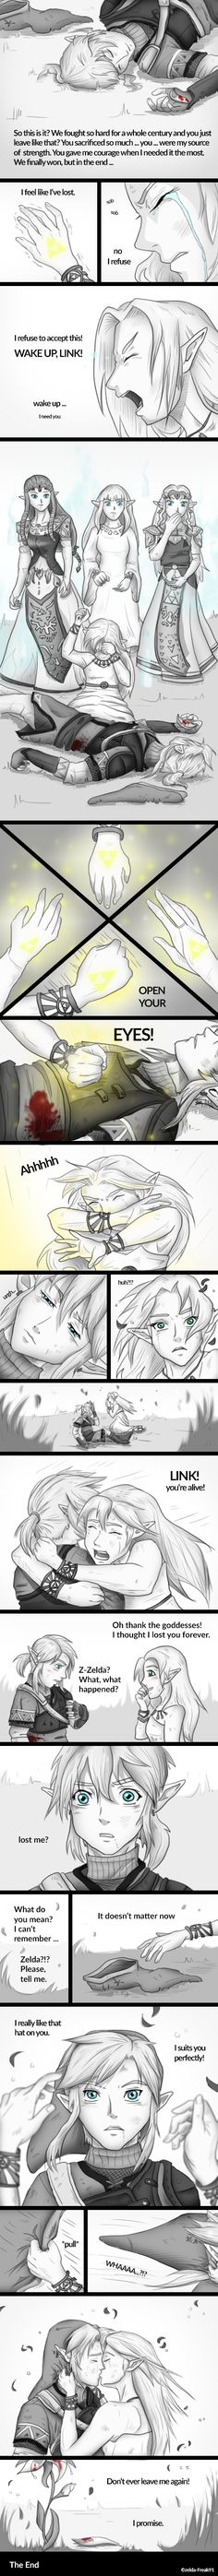 Zelda: In The End - 3 by zelda-Freak91